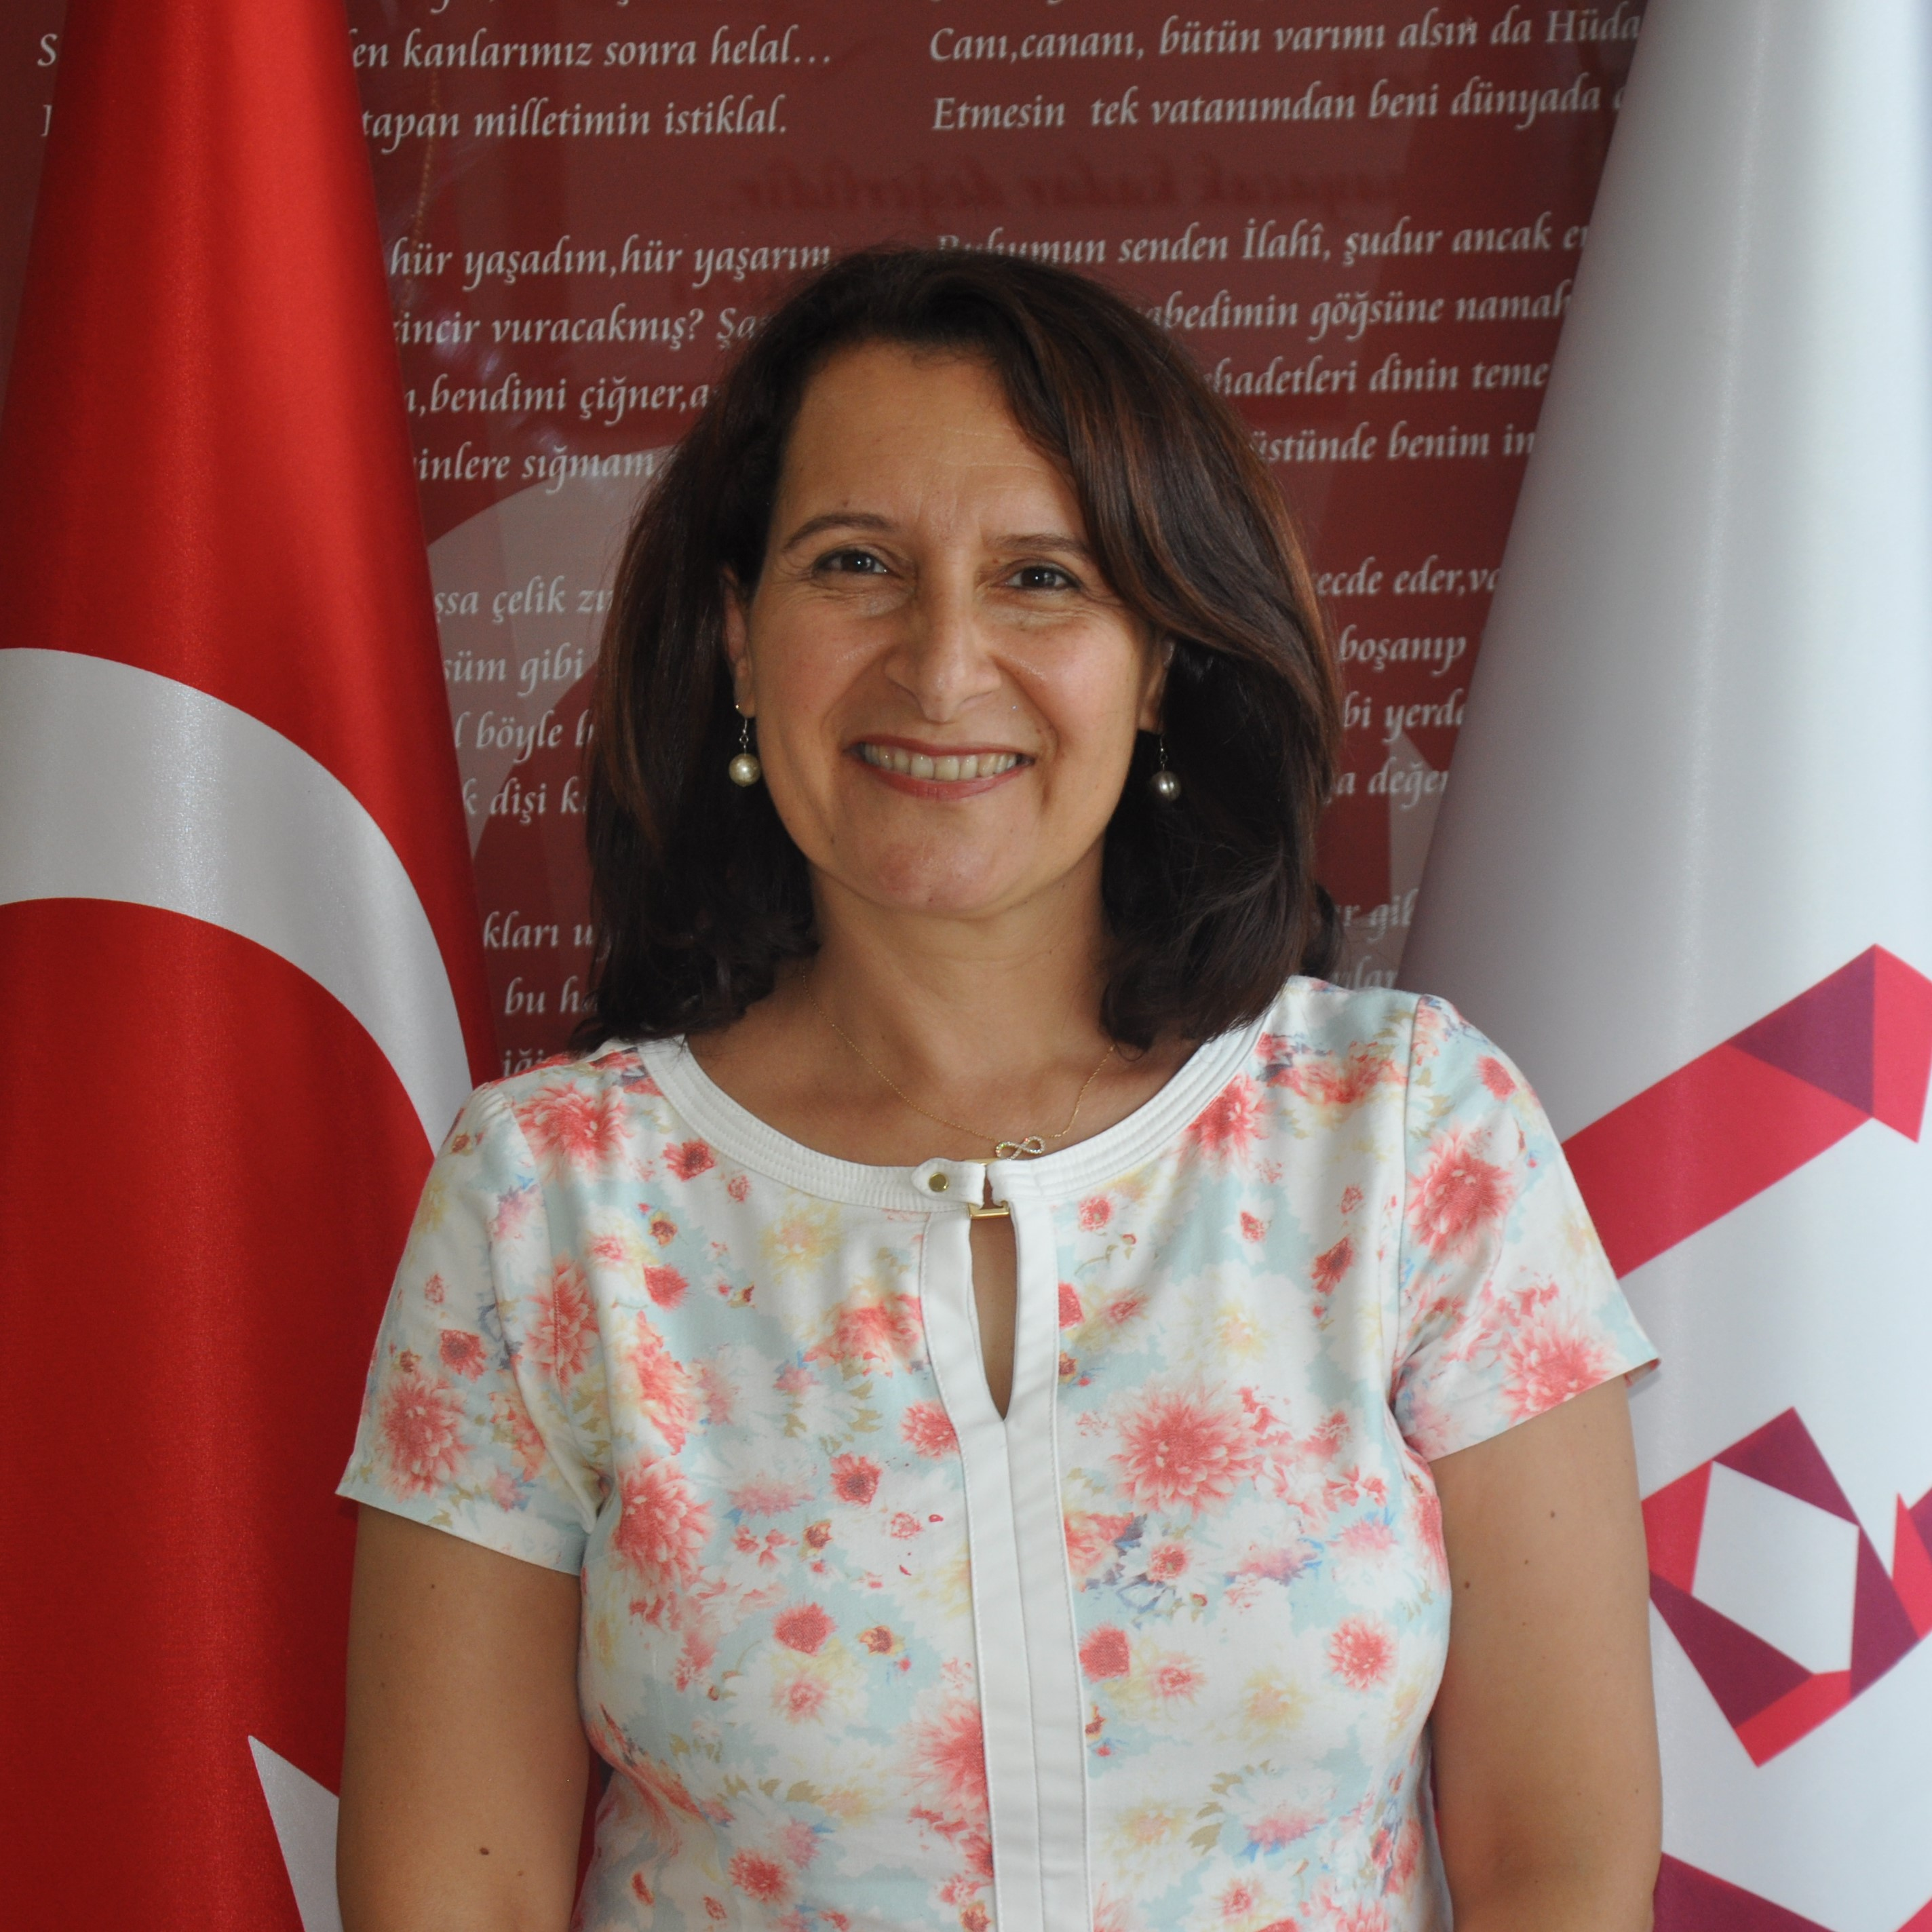 Gülay Arlı